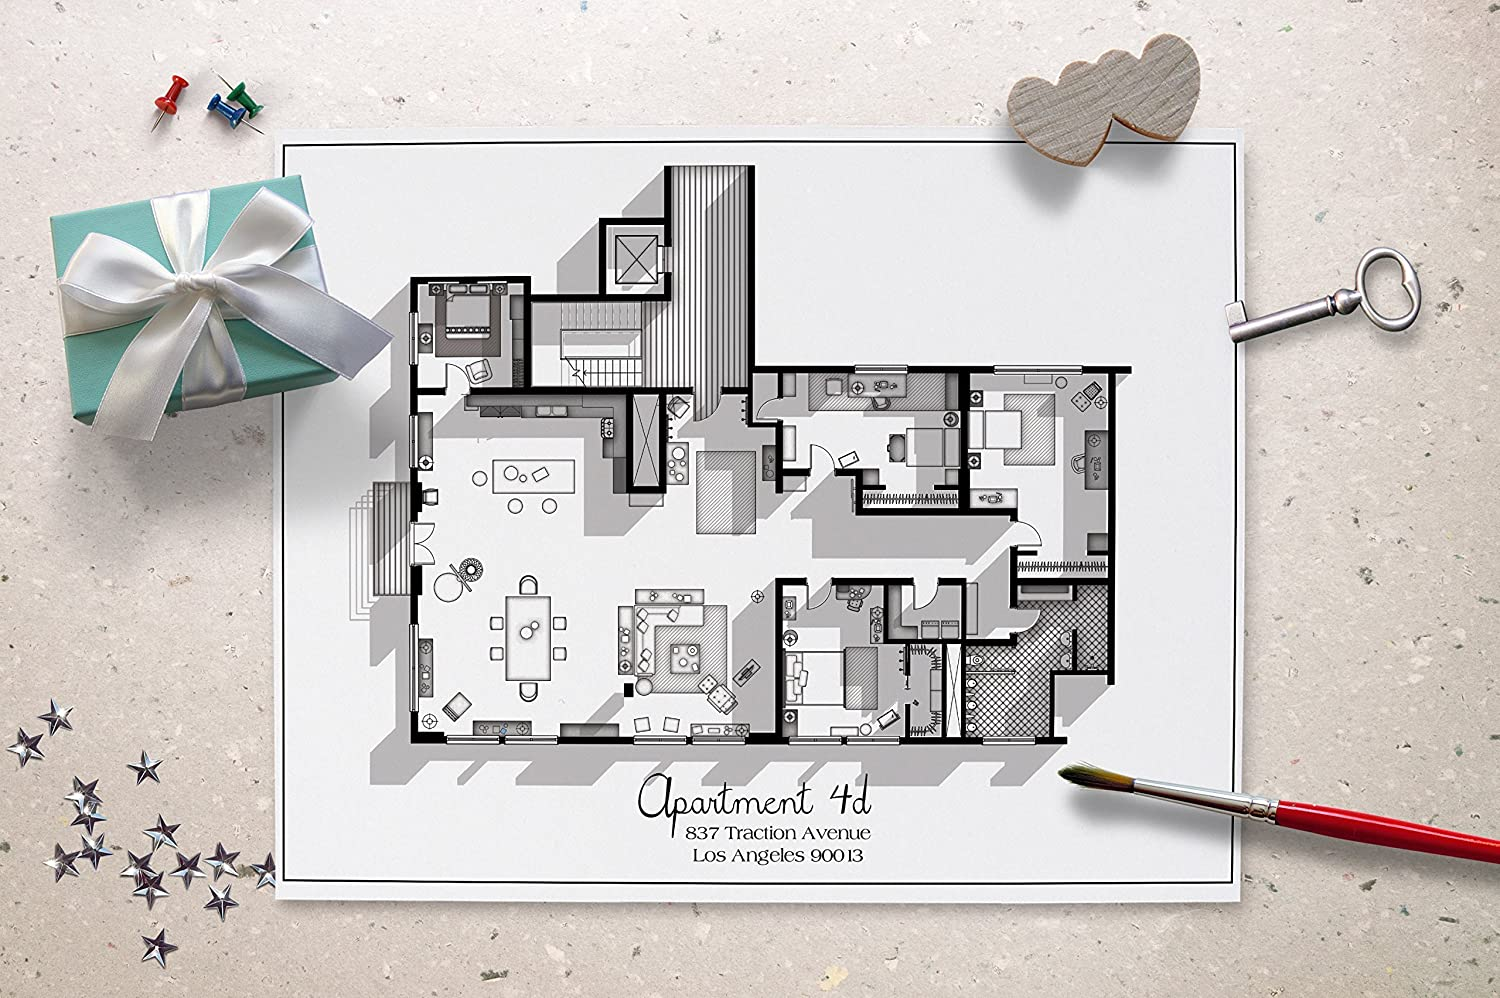 Amazon.com: New Girl TV Show Apartment Floor Plan   Black And White  Edition  New Girl TV Show Layout   Apartment 4D Floor Plan   New Girl  Poster   Gift Idea ...